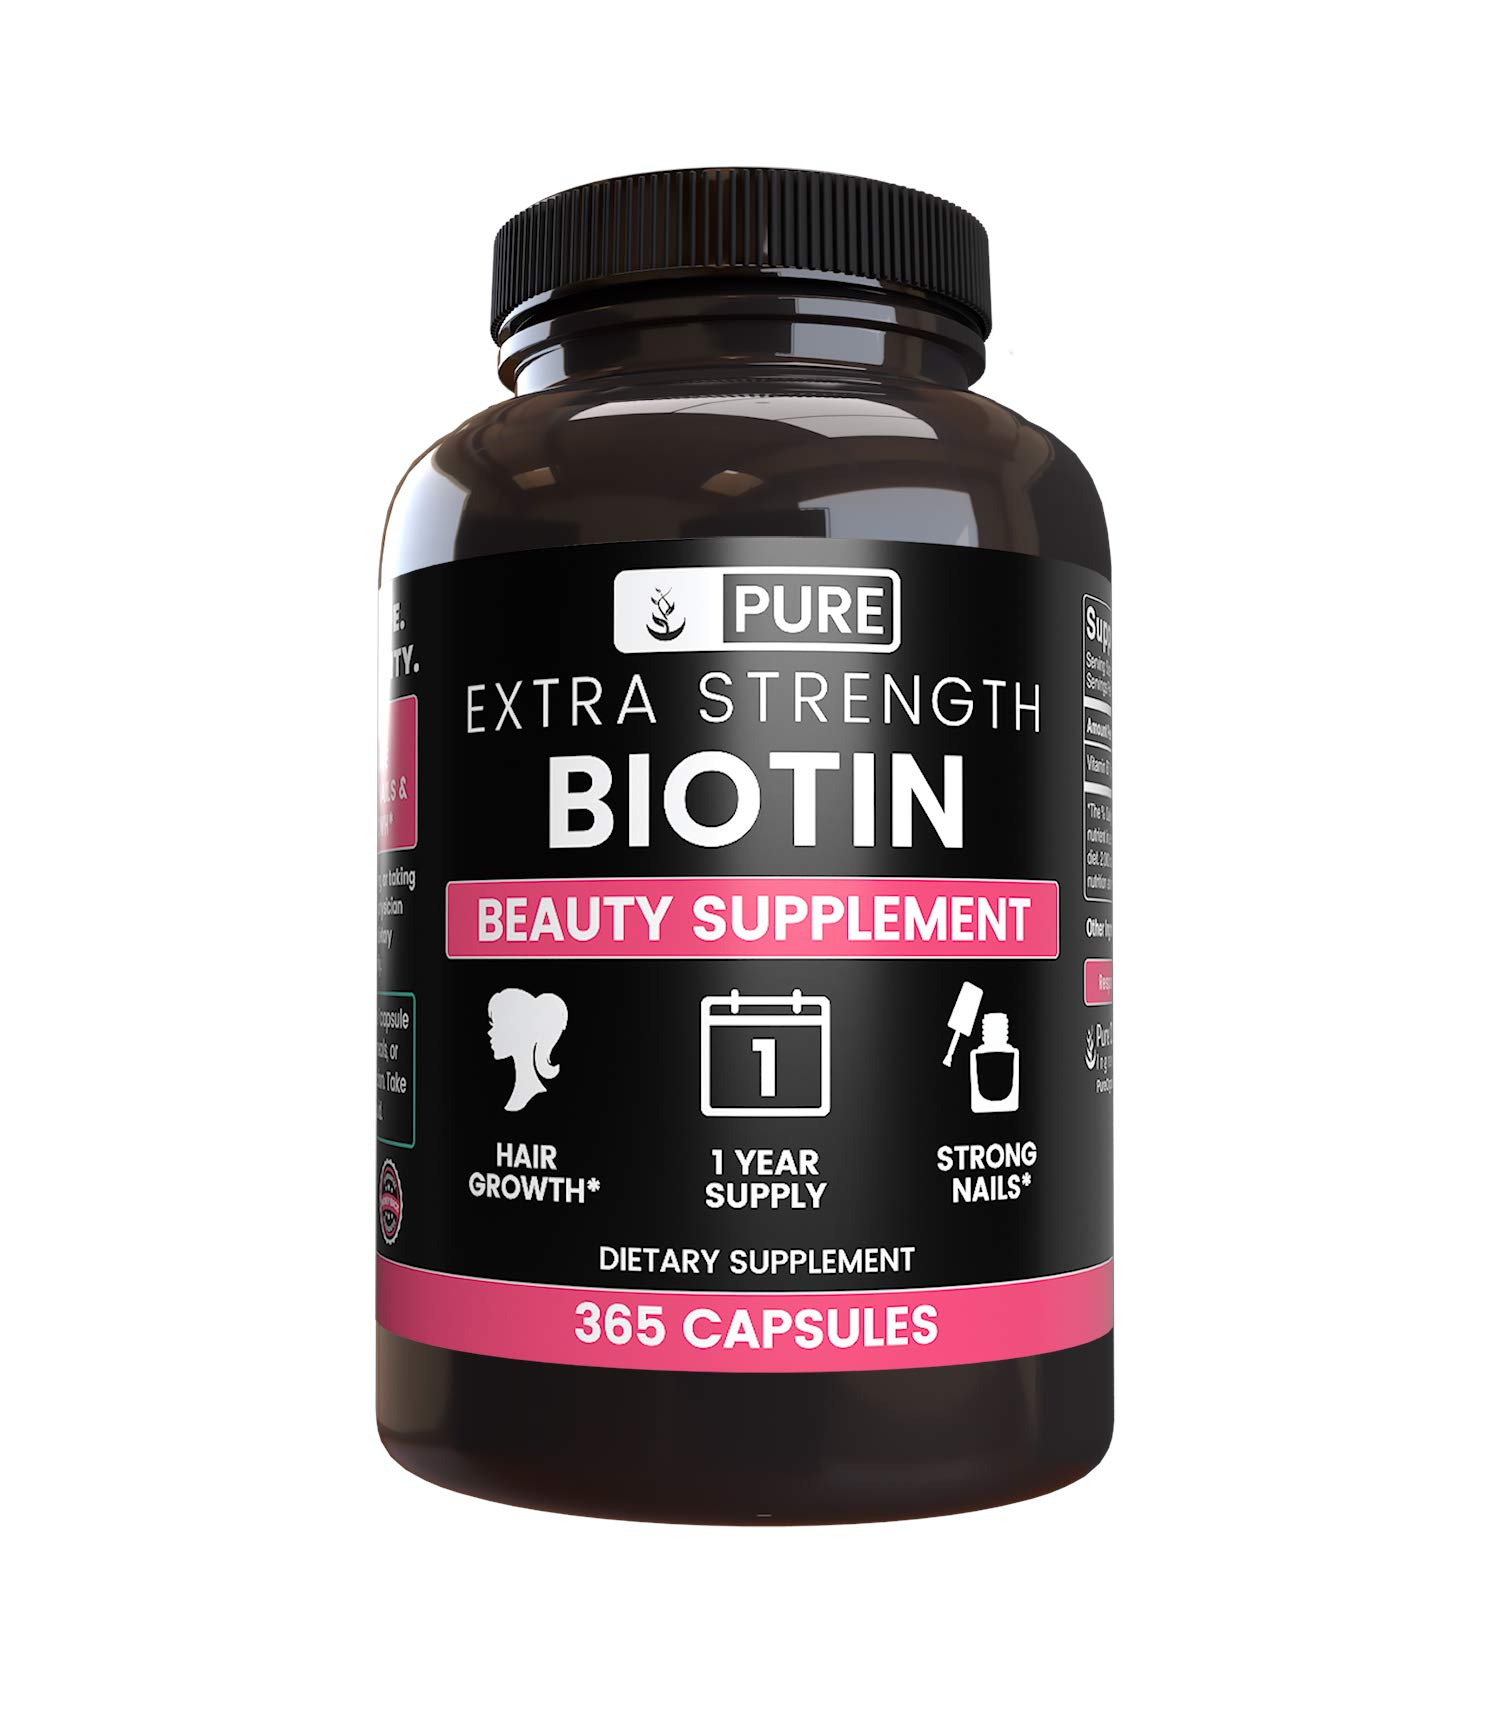 Natural Source Extra Strength Biotin, 365 Capsules, 1 Year Supply, Gluten-Free, Made in USA, Non-GMO, Potent, 8750mcg of Biotin per Serving for Hair & Skin*